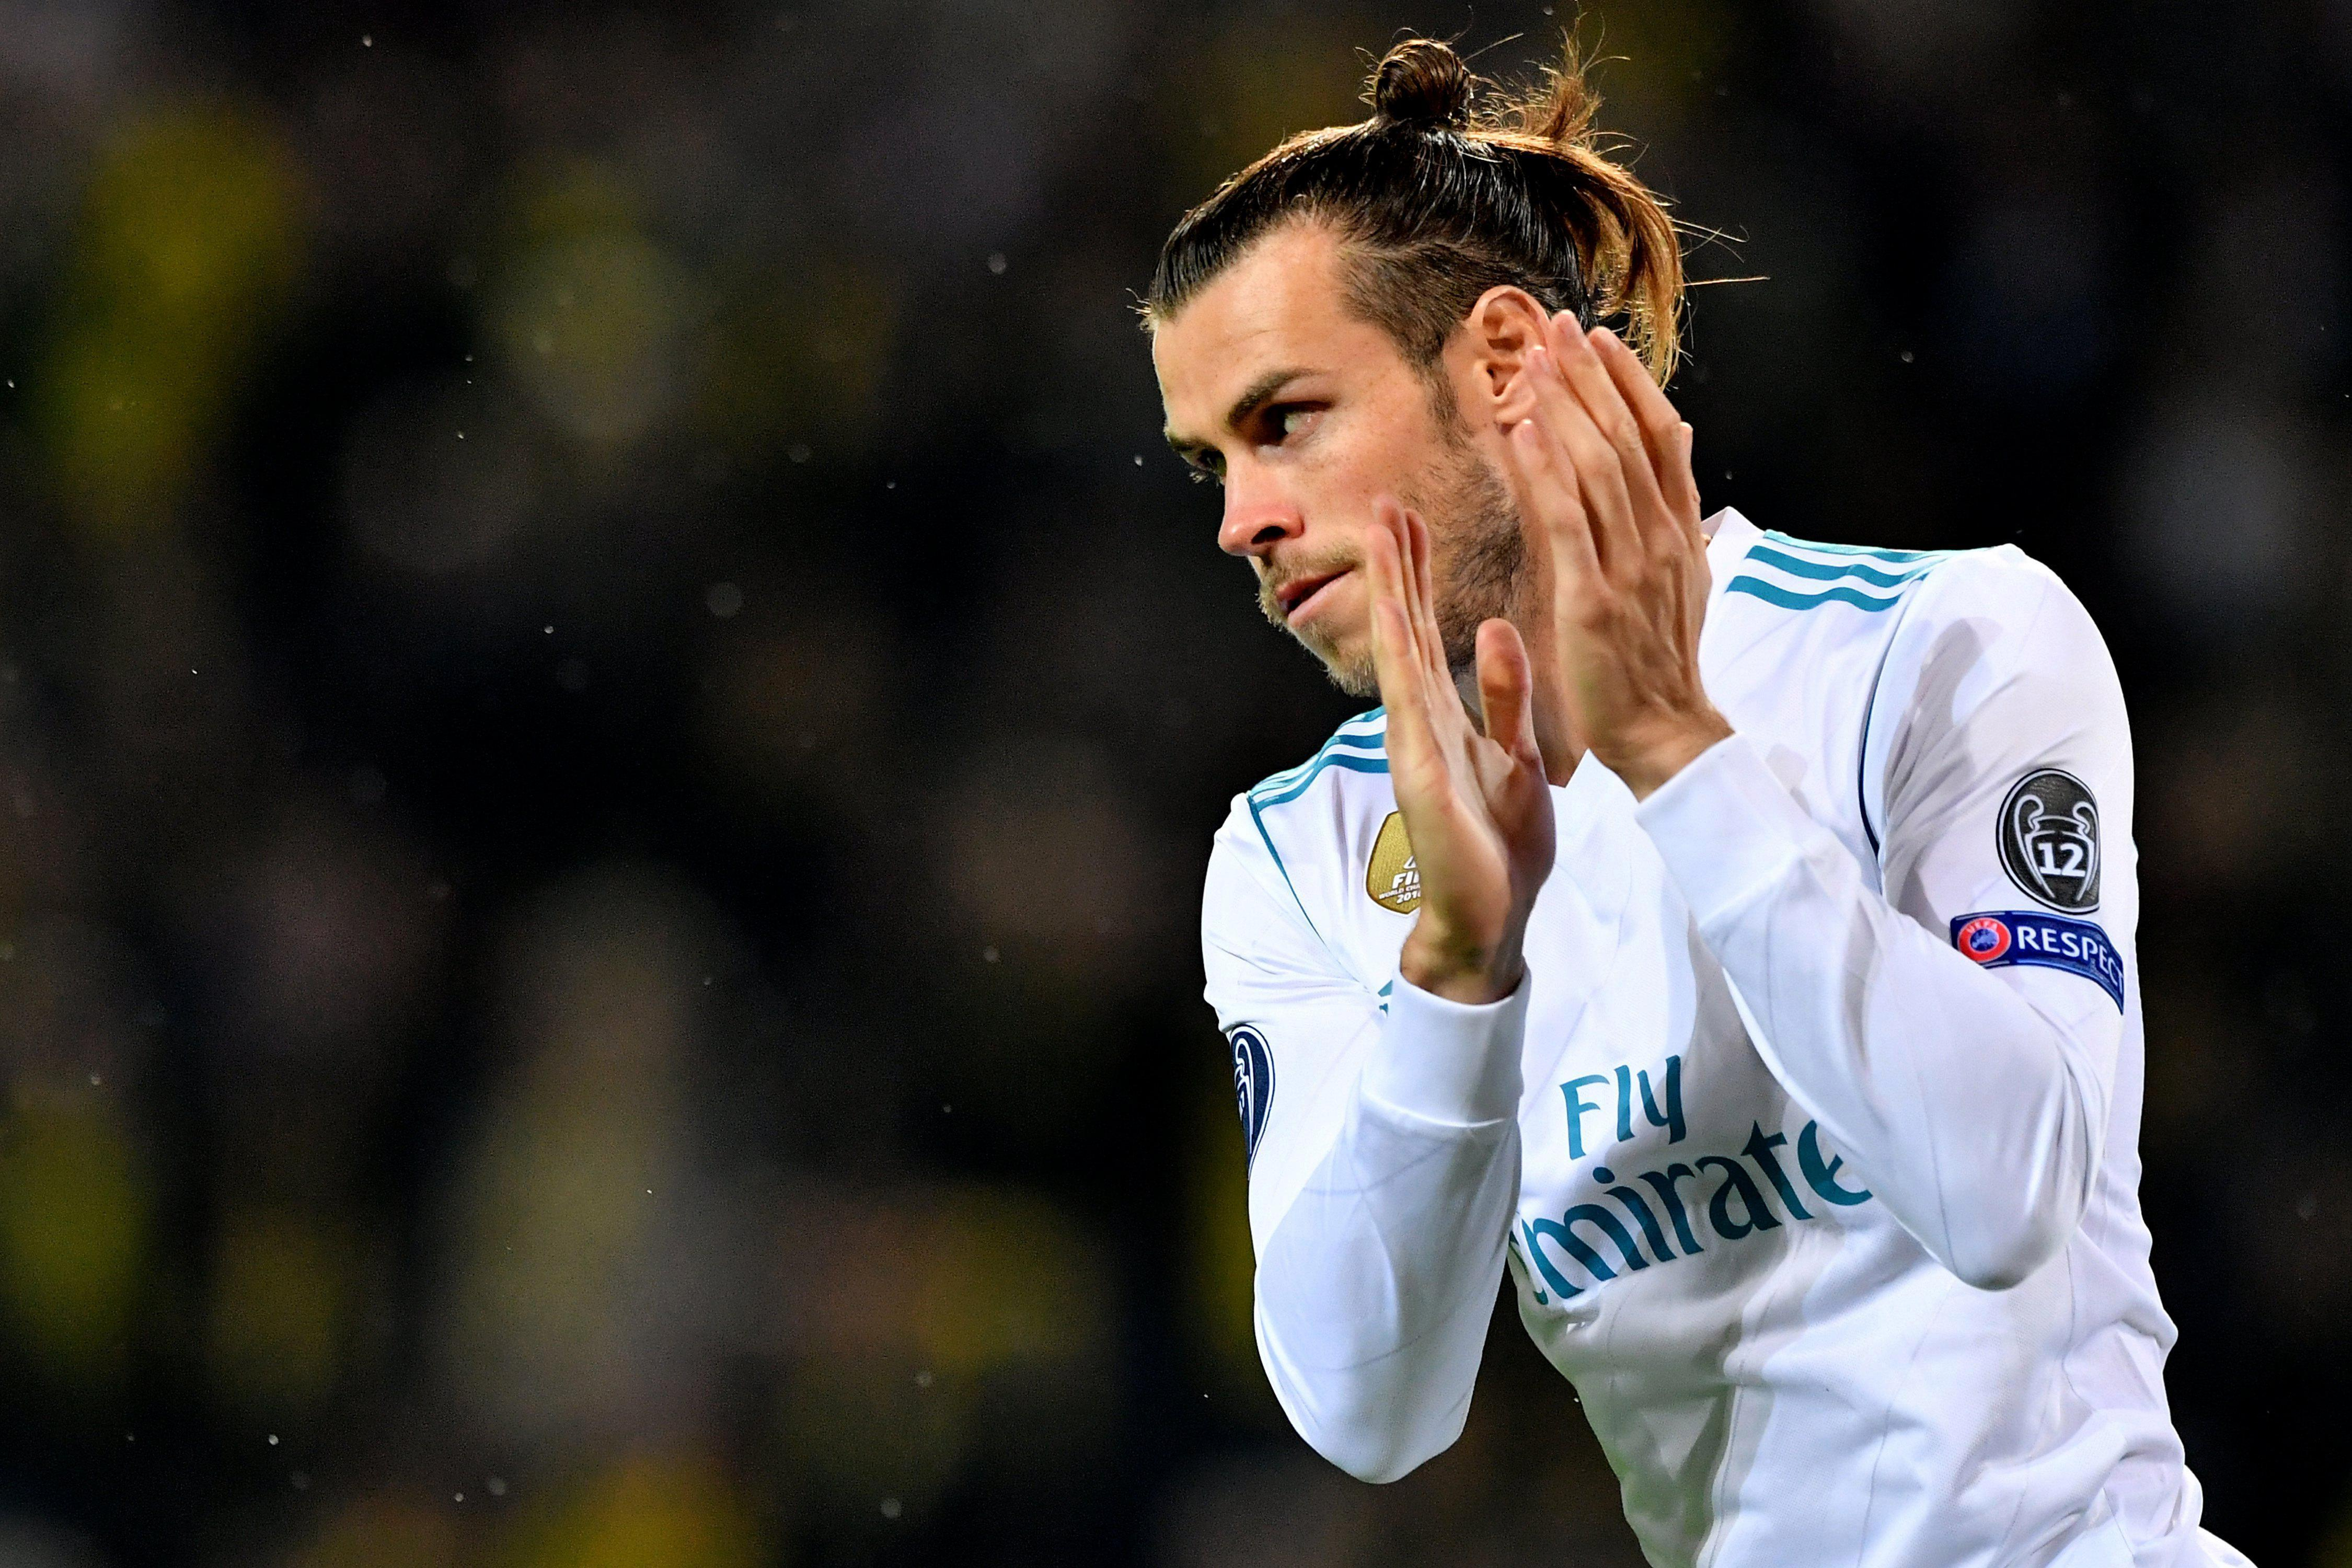 Real Madrid are reportedly ready to offer Gareth Bale a sensational return to Tottenham